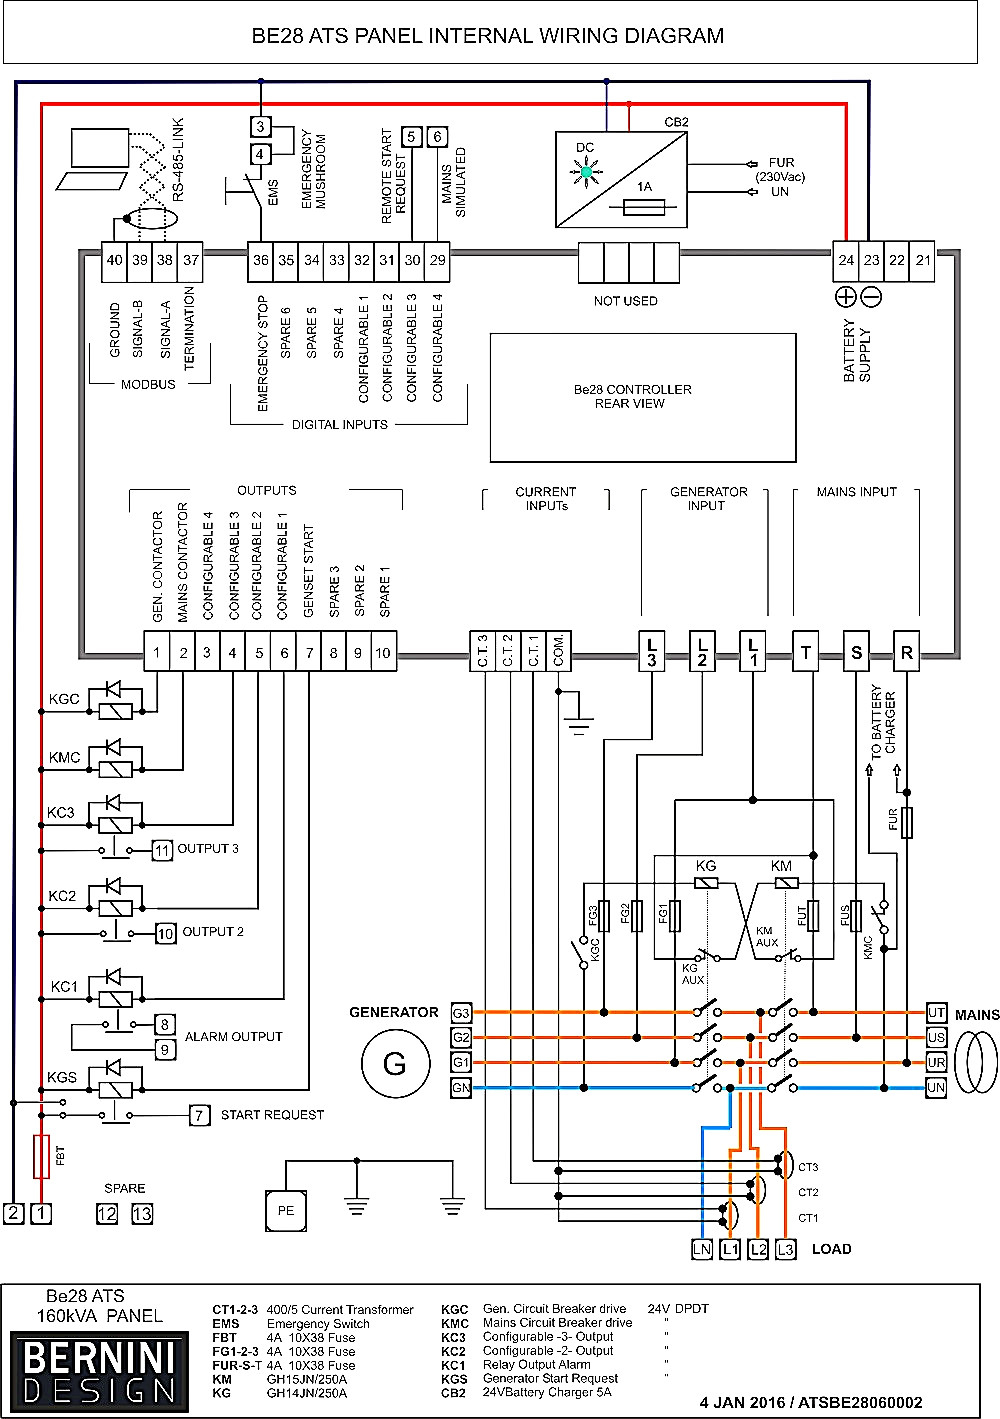 generac remote start wiring diagram Download-Generac Automatic Transfer Switch Wiring Diagram Simple Design Between Solargenerator And 15-p